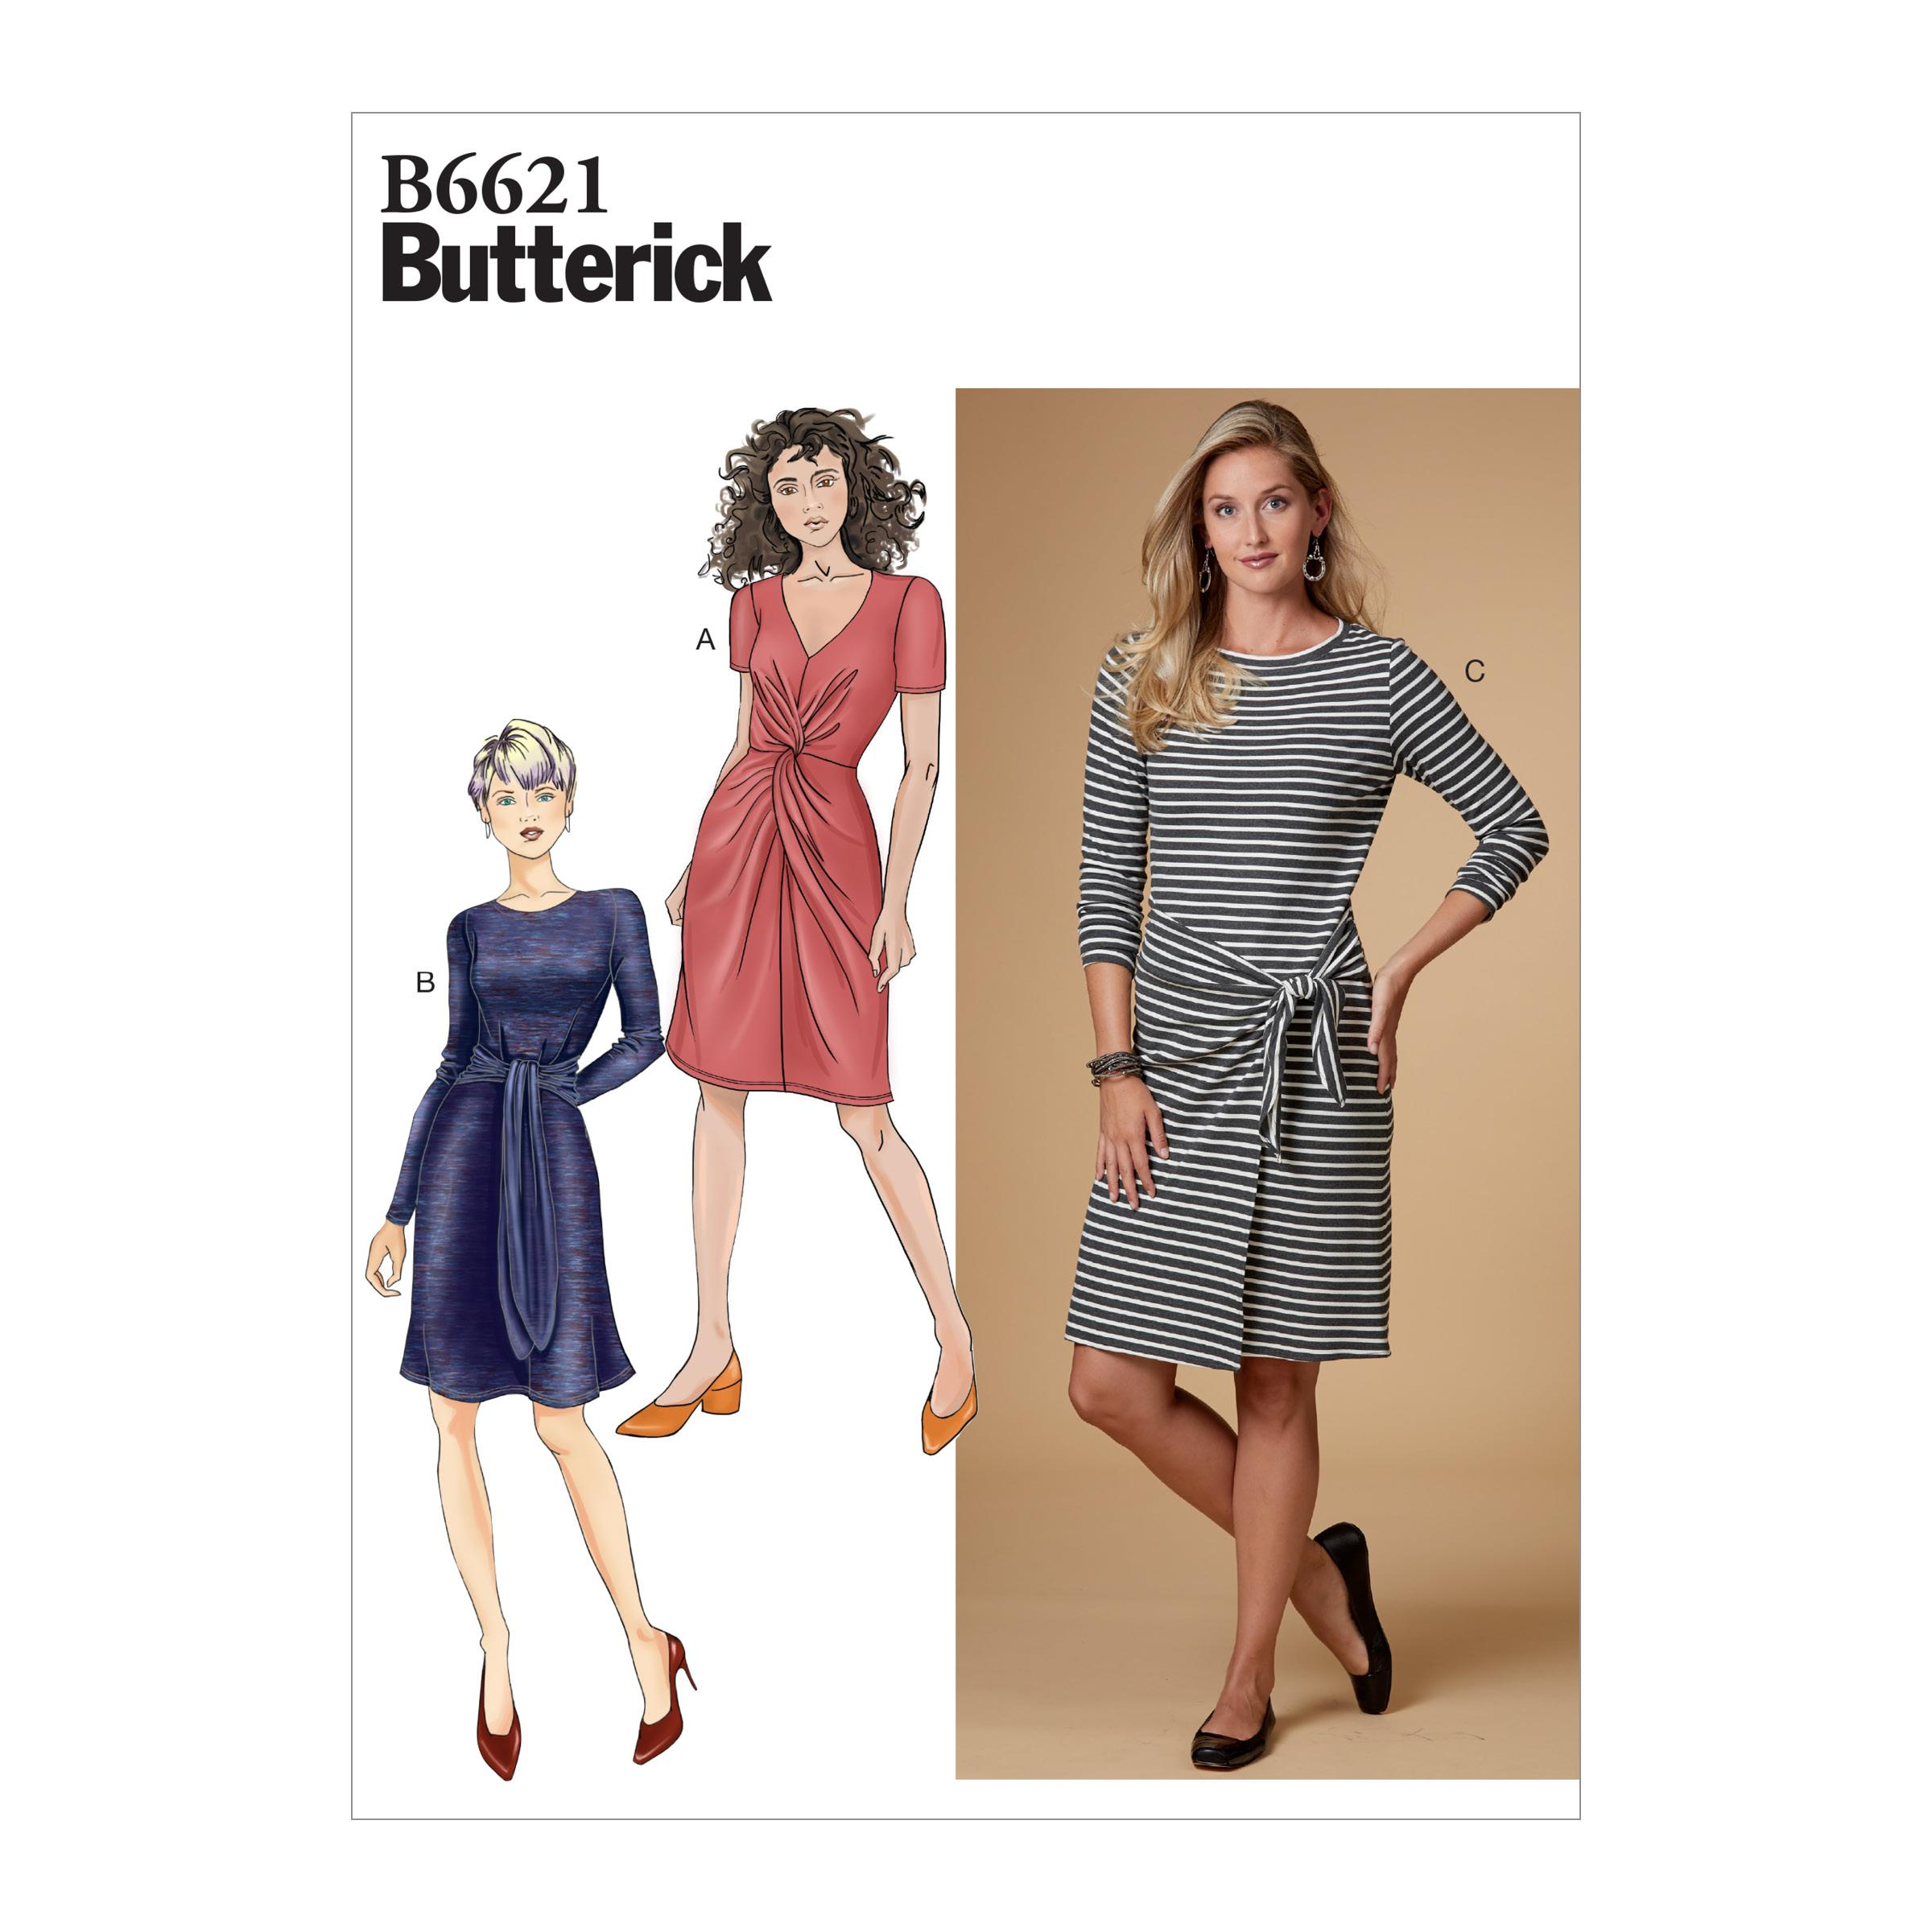 Butterick B6621 Misses' Dress